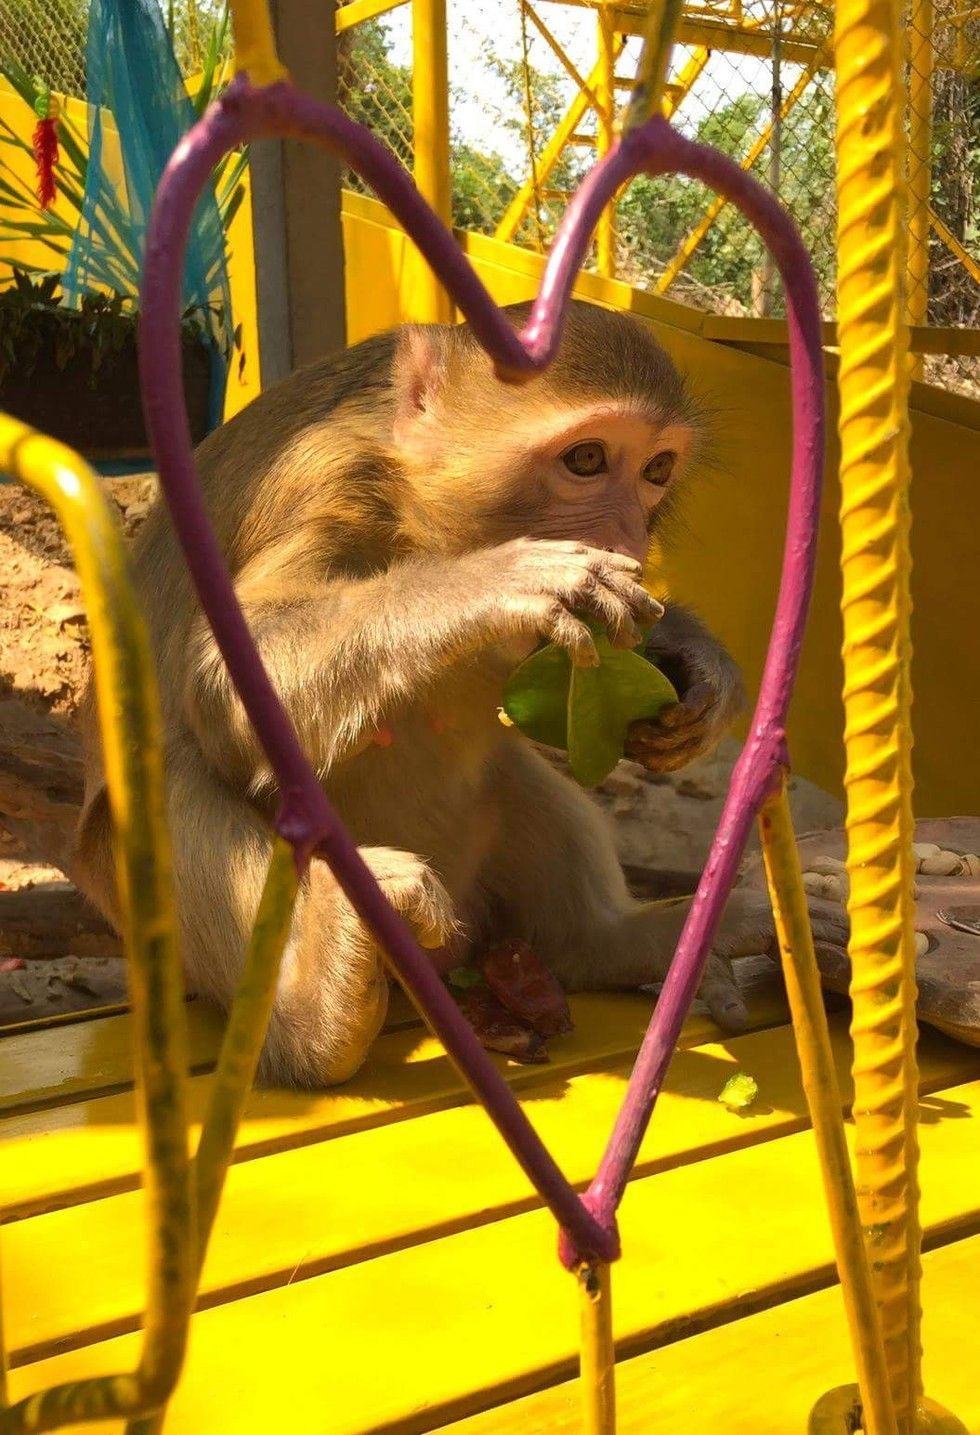 Monkey Who Spent 7 Years In Cage Now Has Her Very Own 'Palace'